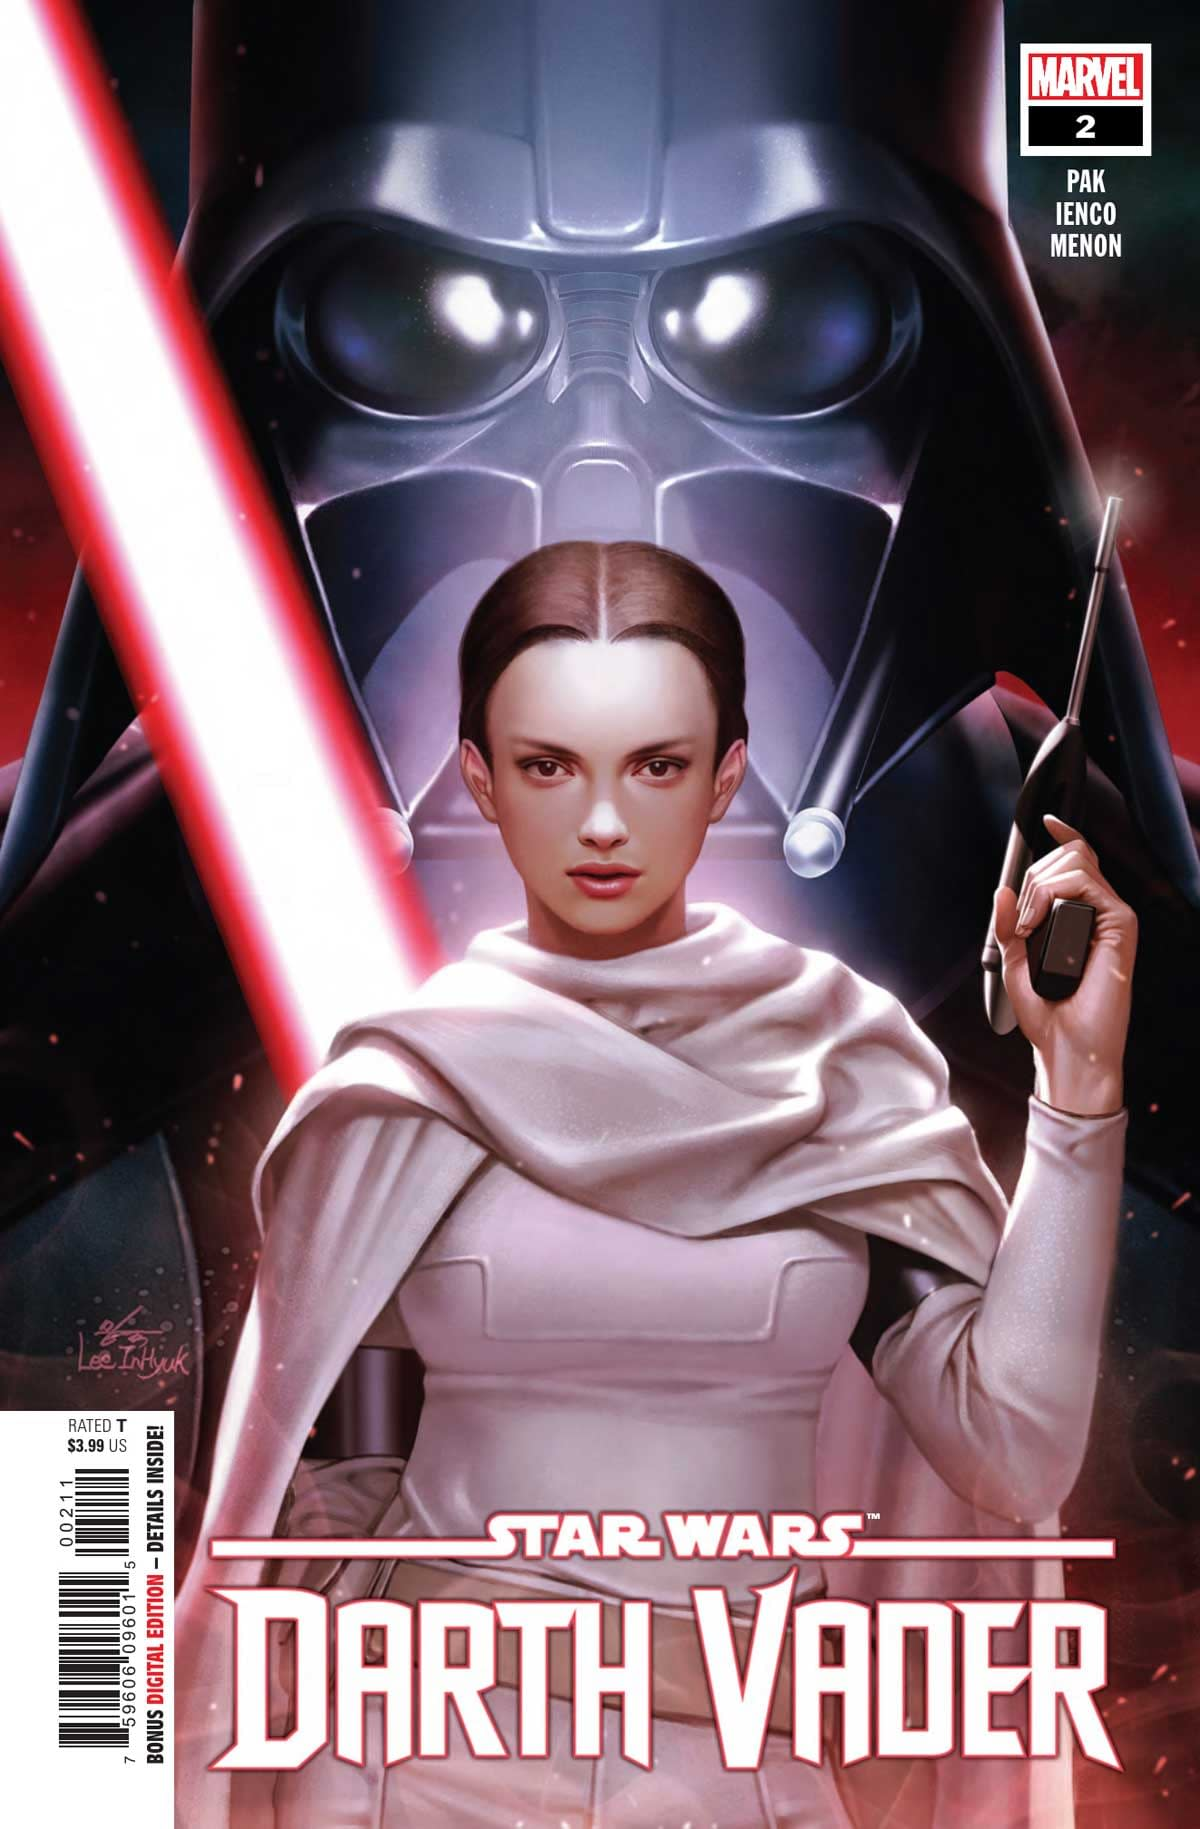 """REVIEW: Star Wars Darth Vader #2 -- """"Won't Mean As Much For People Who Can't Quote The Canon Pretty Effectively"""""""